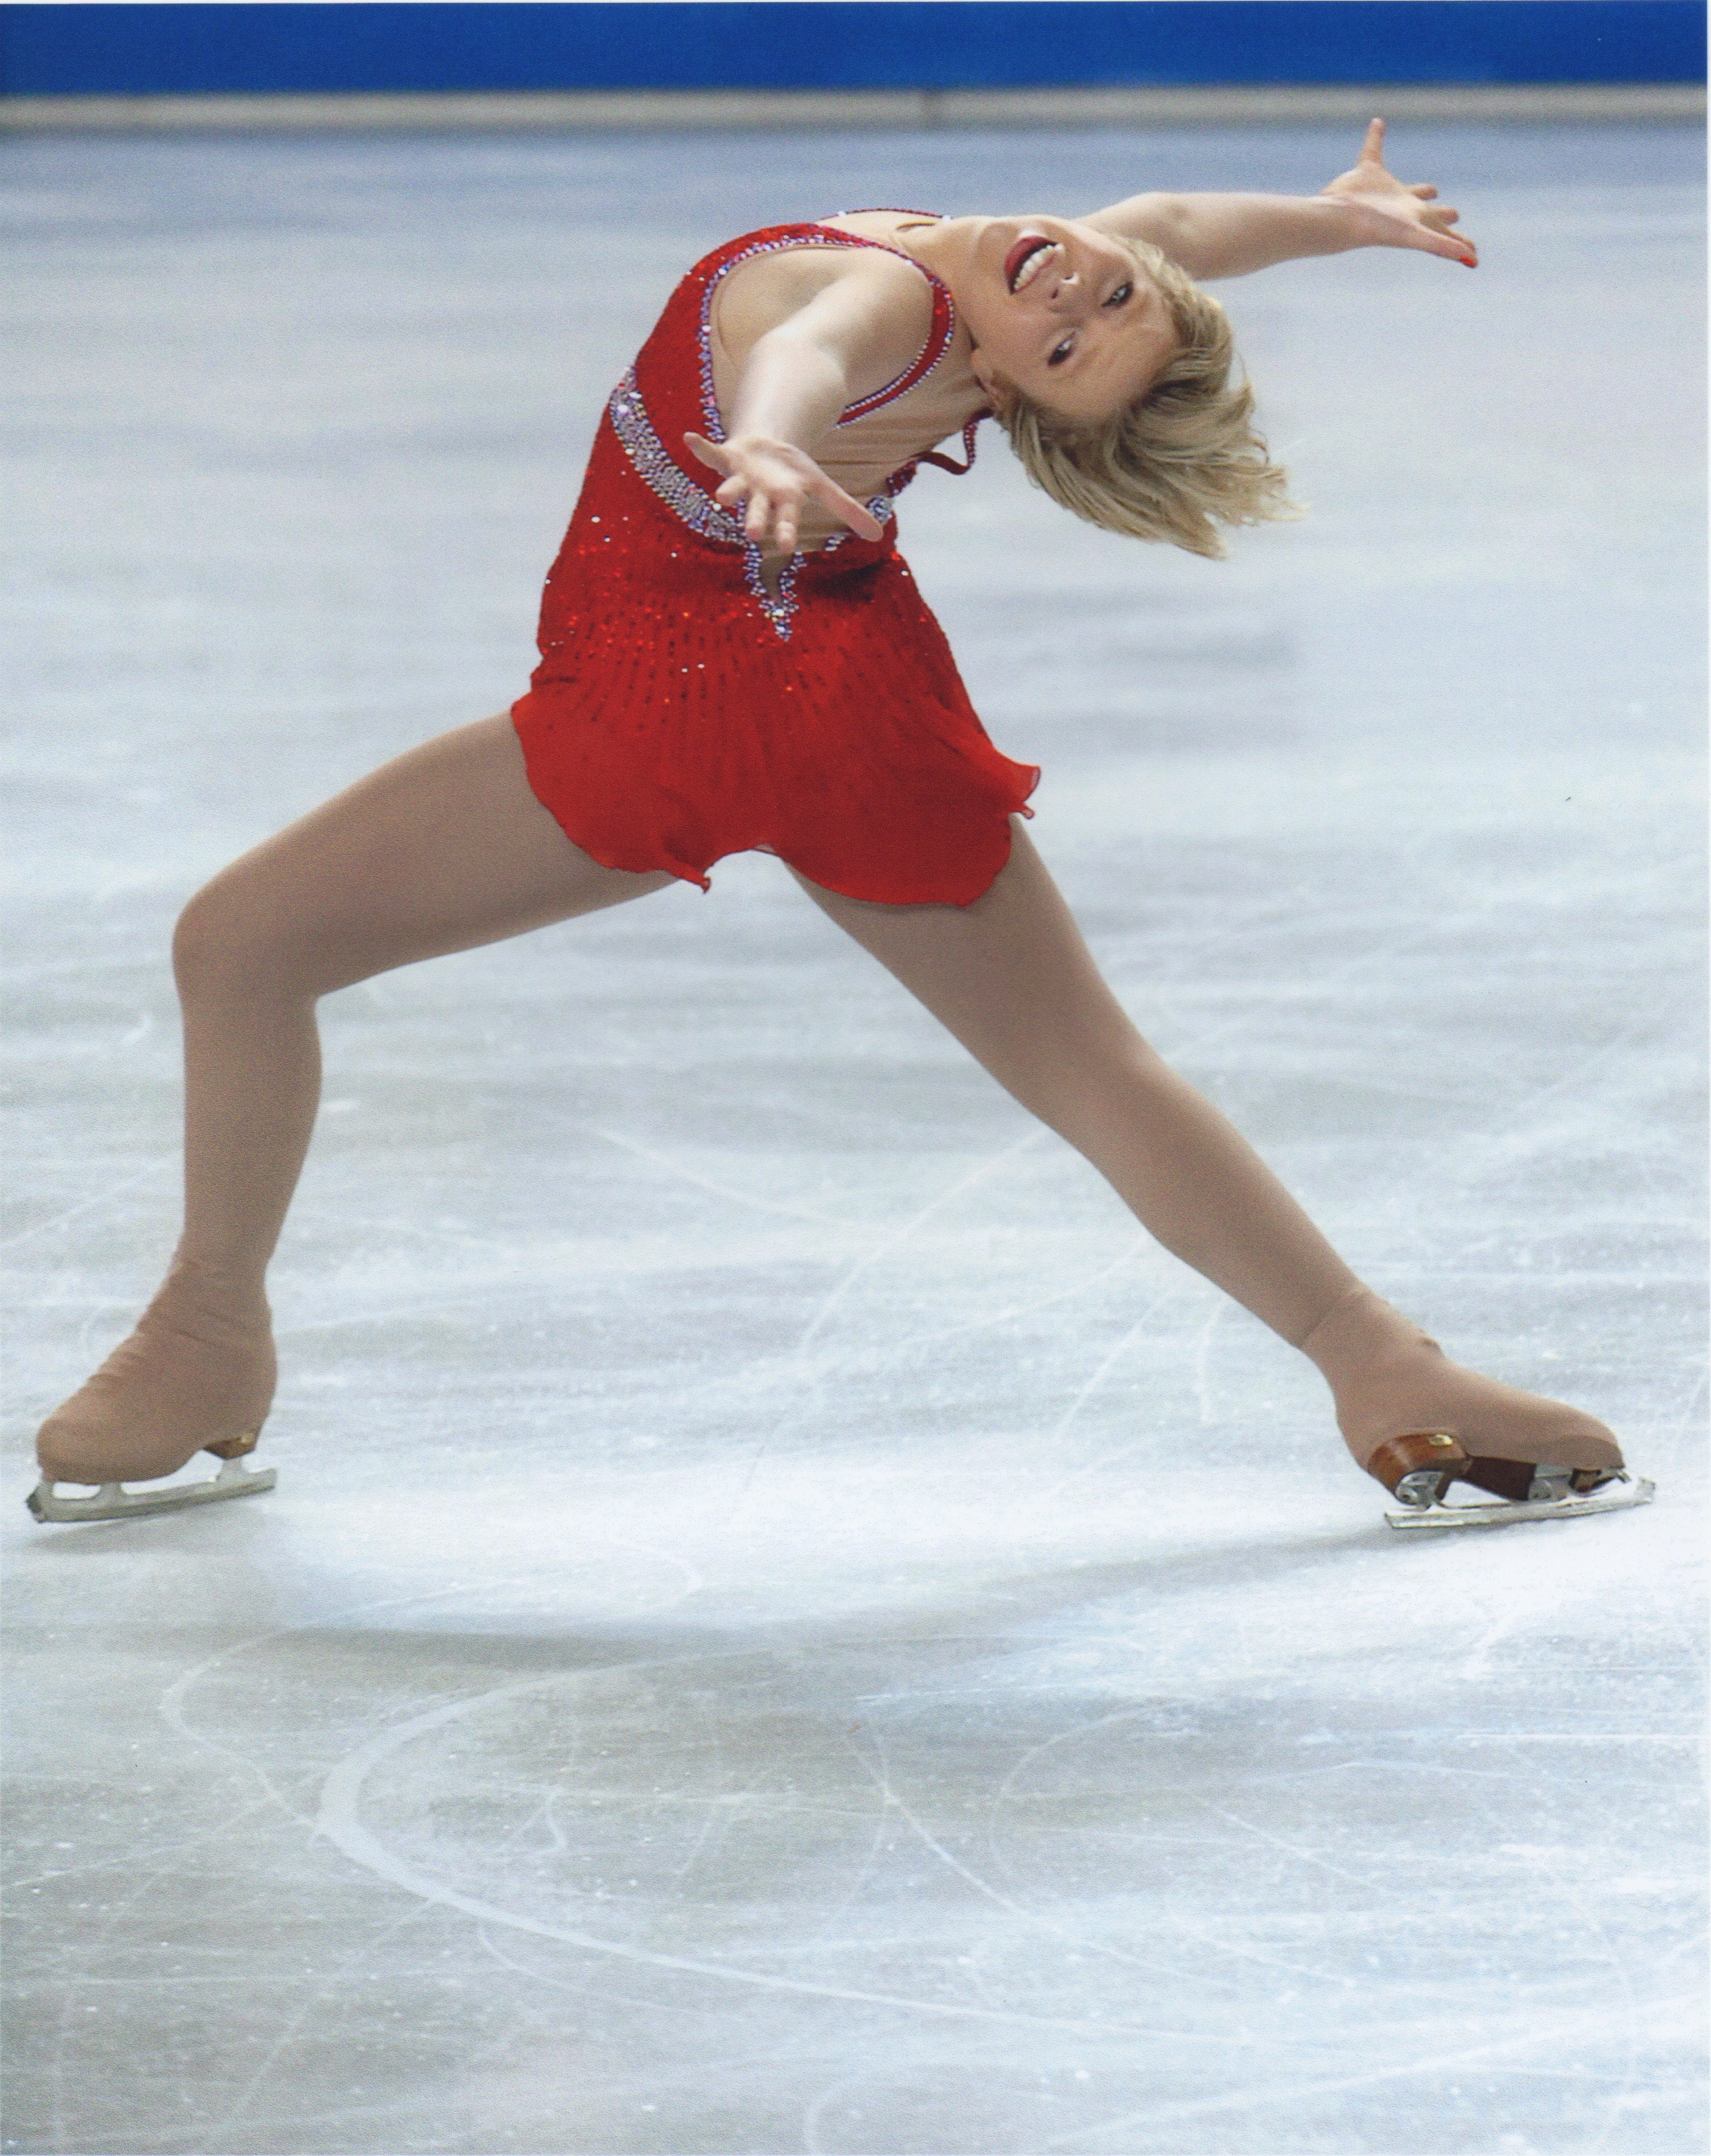 Ina Bauer Pic from Leah[1]